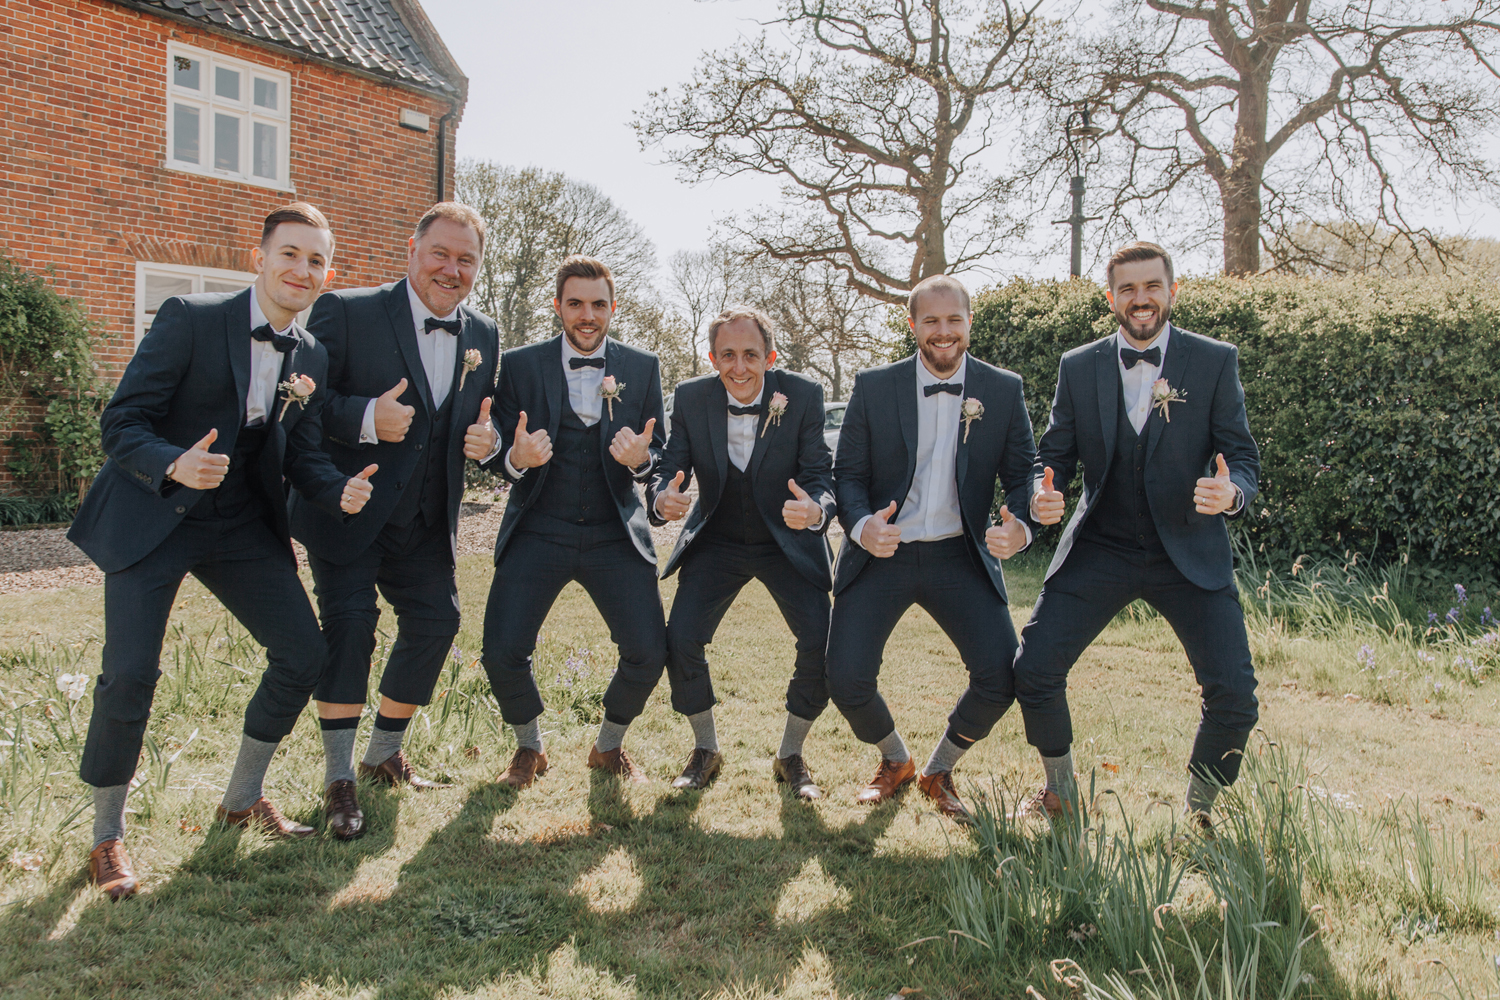 BEST_OF_2017_NORFOLK_WEDDING_PHOTOGRAPHER_301